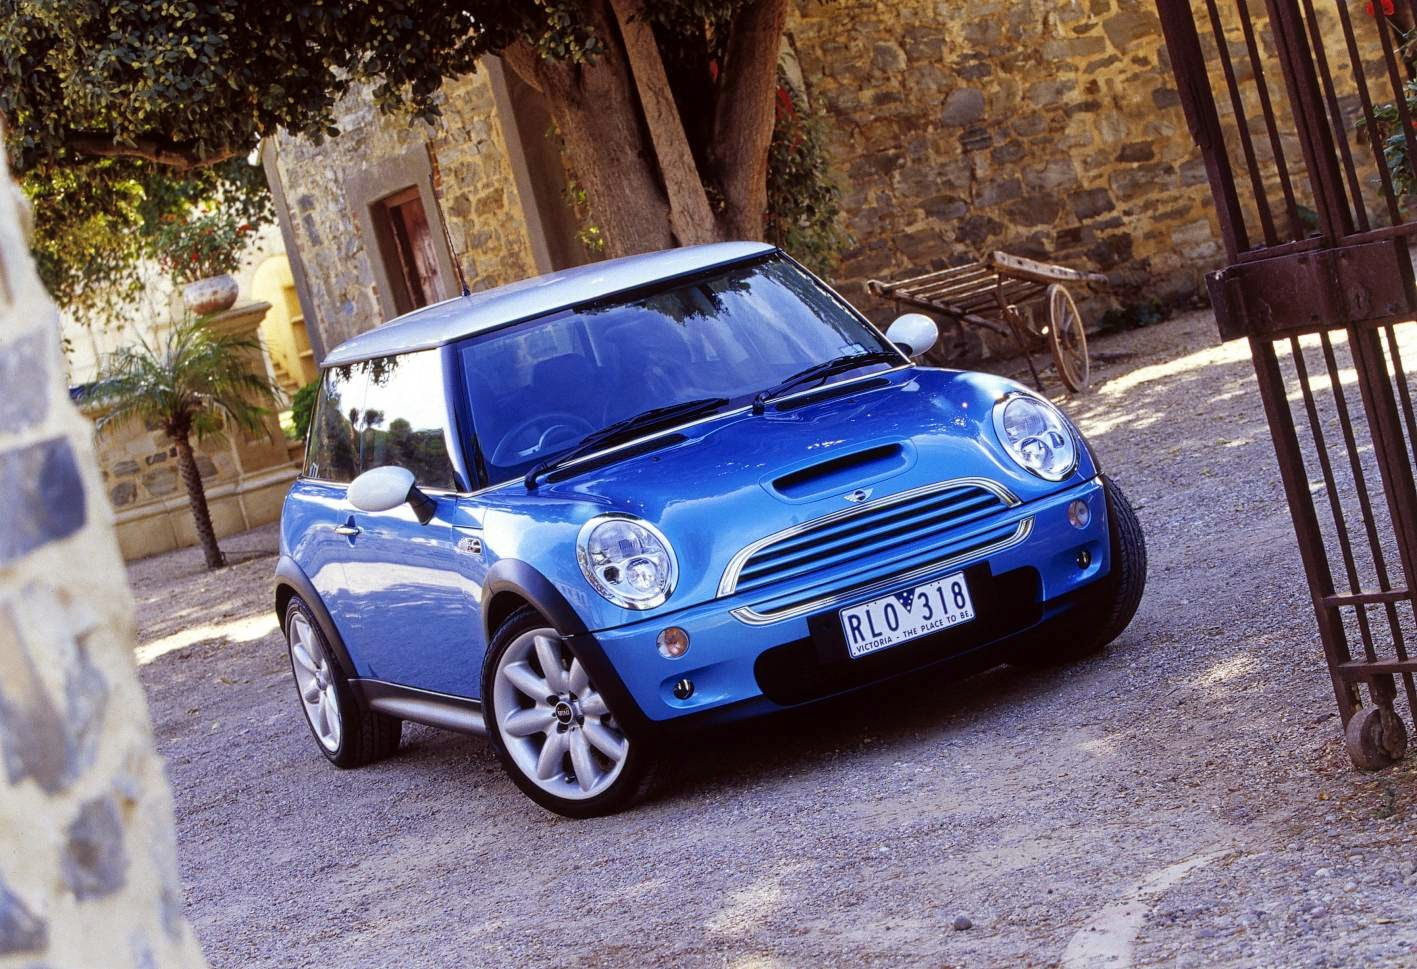 Mini Cooper S, still shot, blue and white is the best colour combo in my opinion